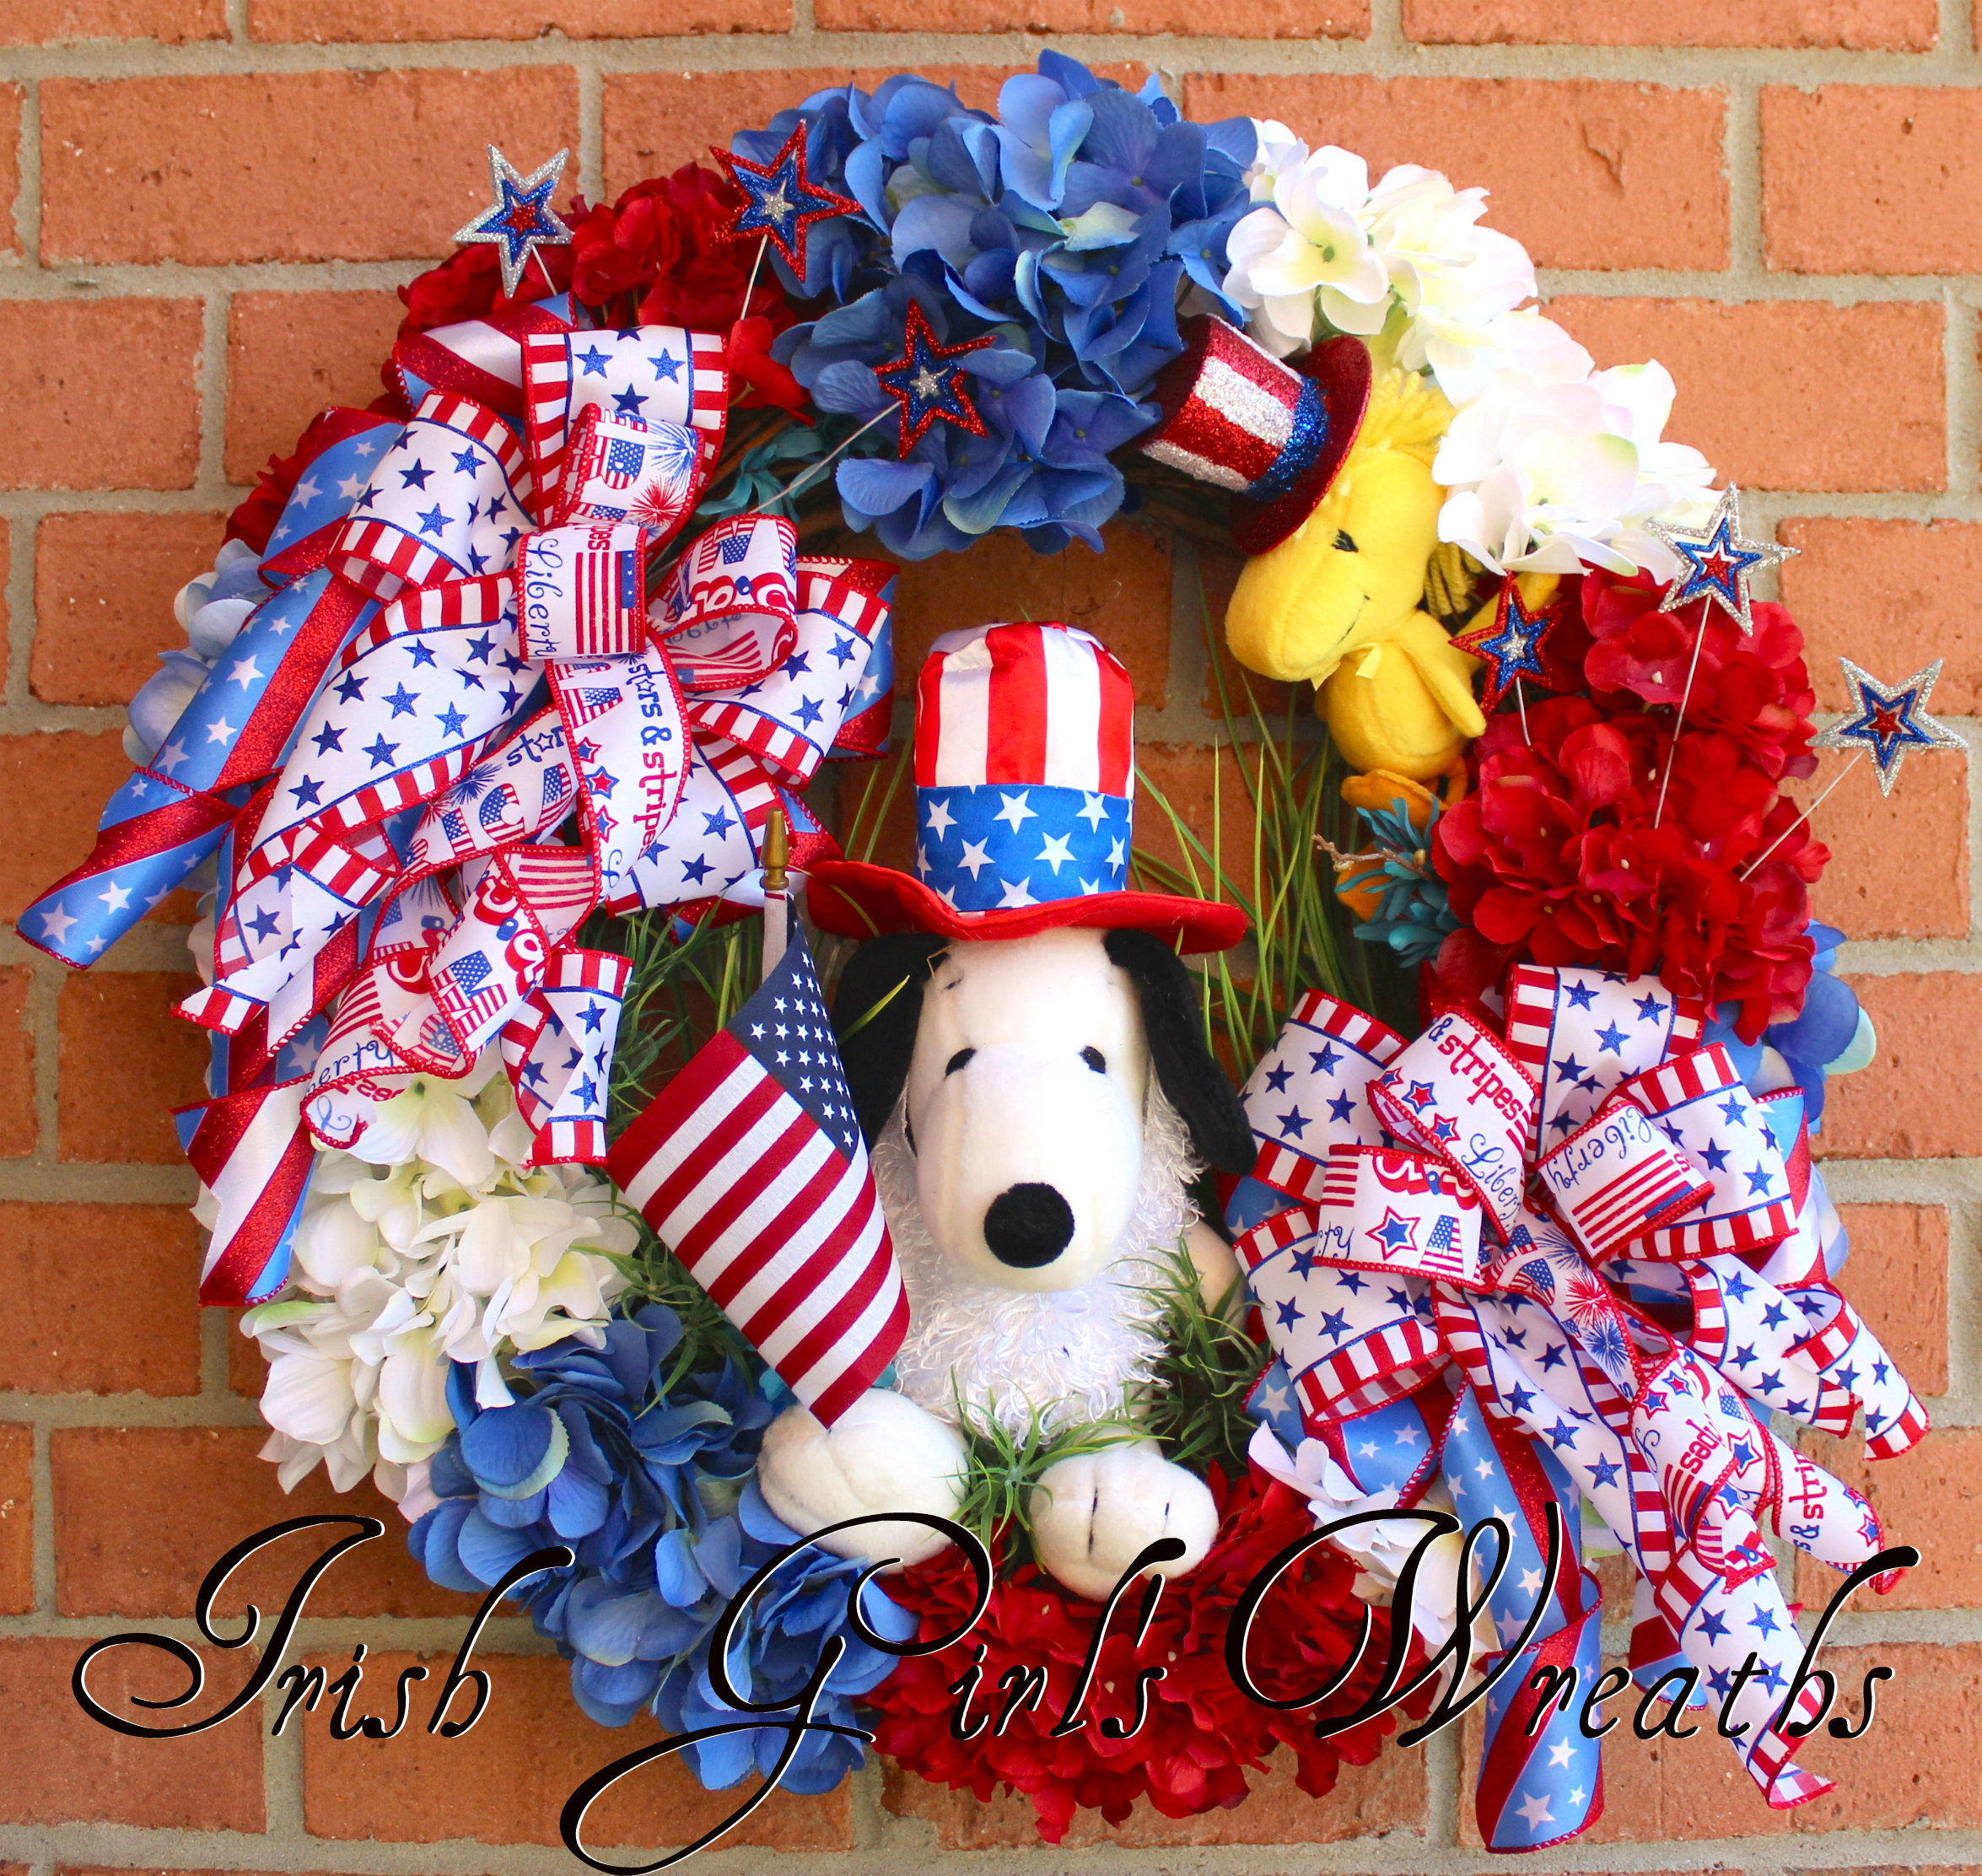 Snoopy and Woodstock Peanuts Patriotic Wreath, custom for Christin